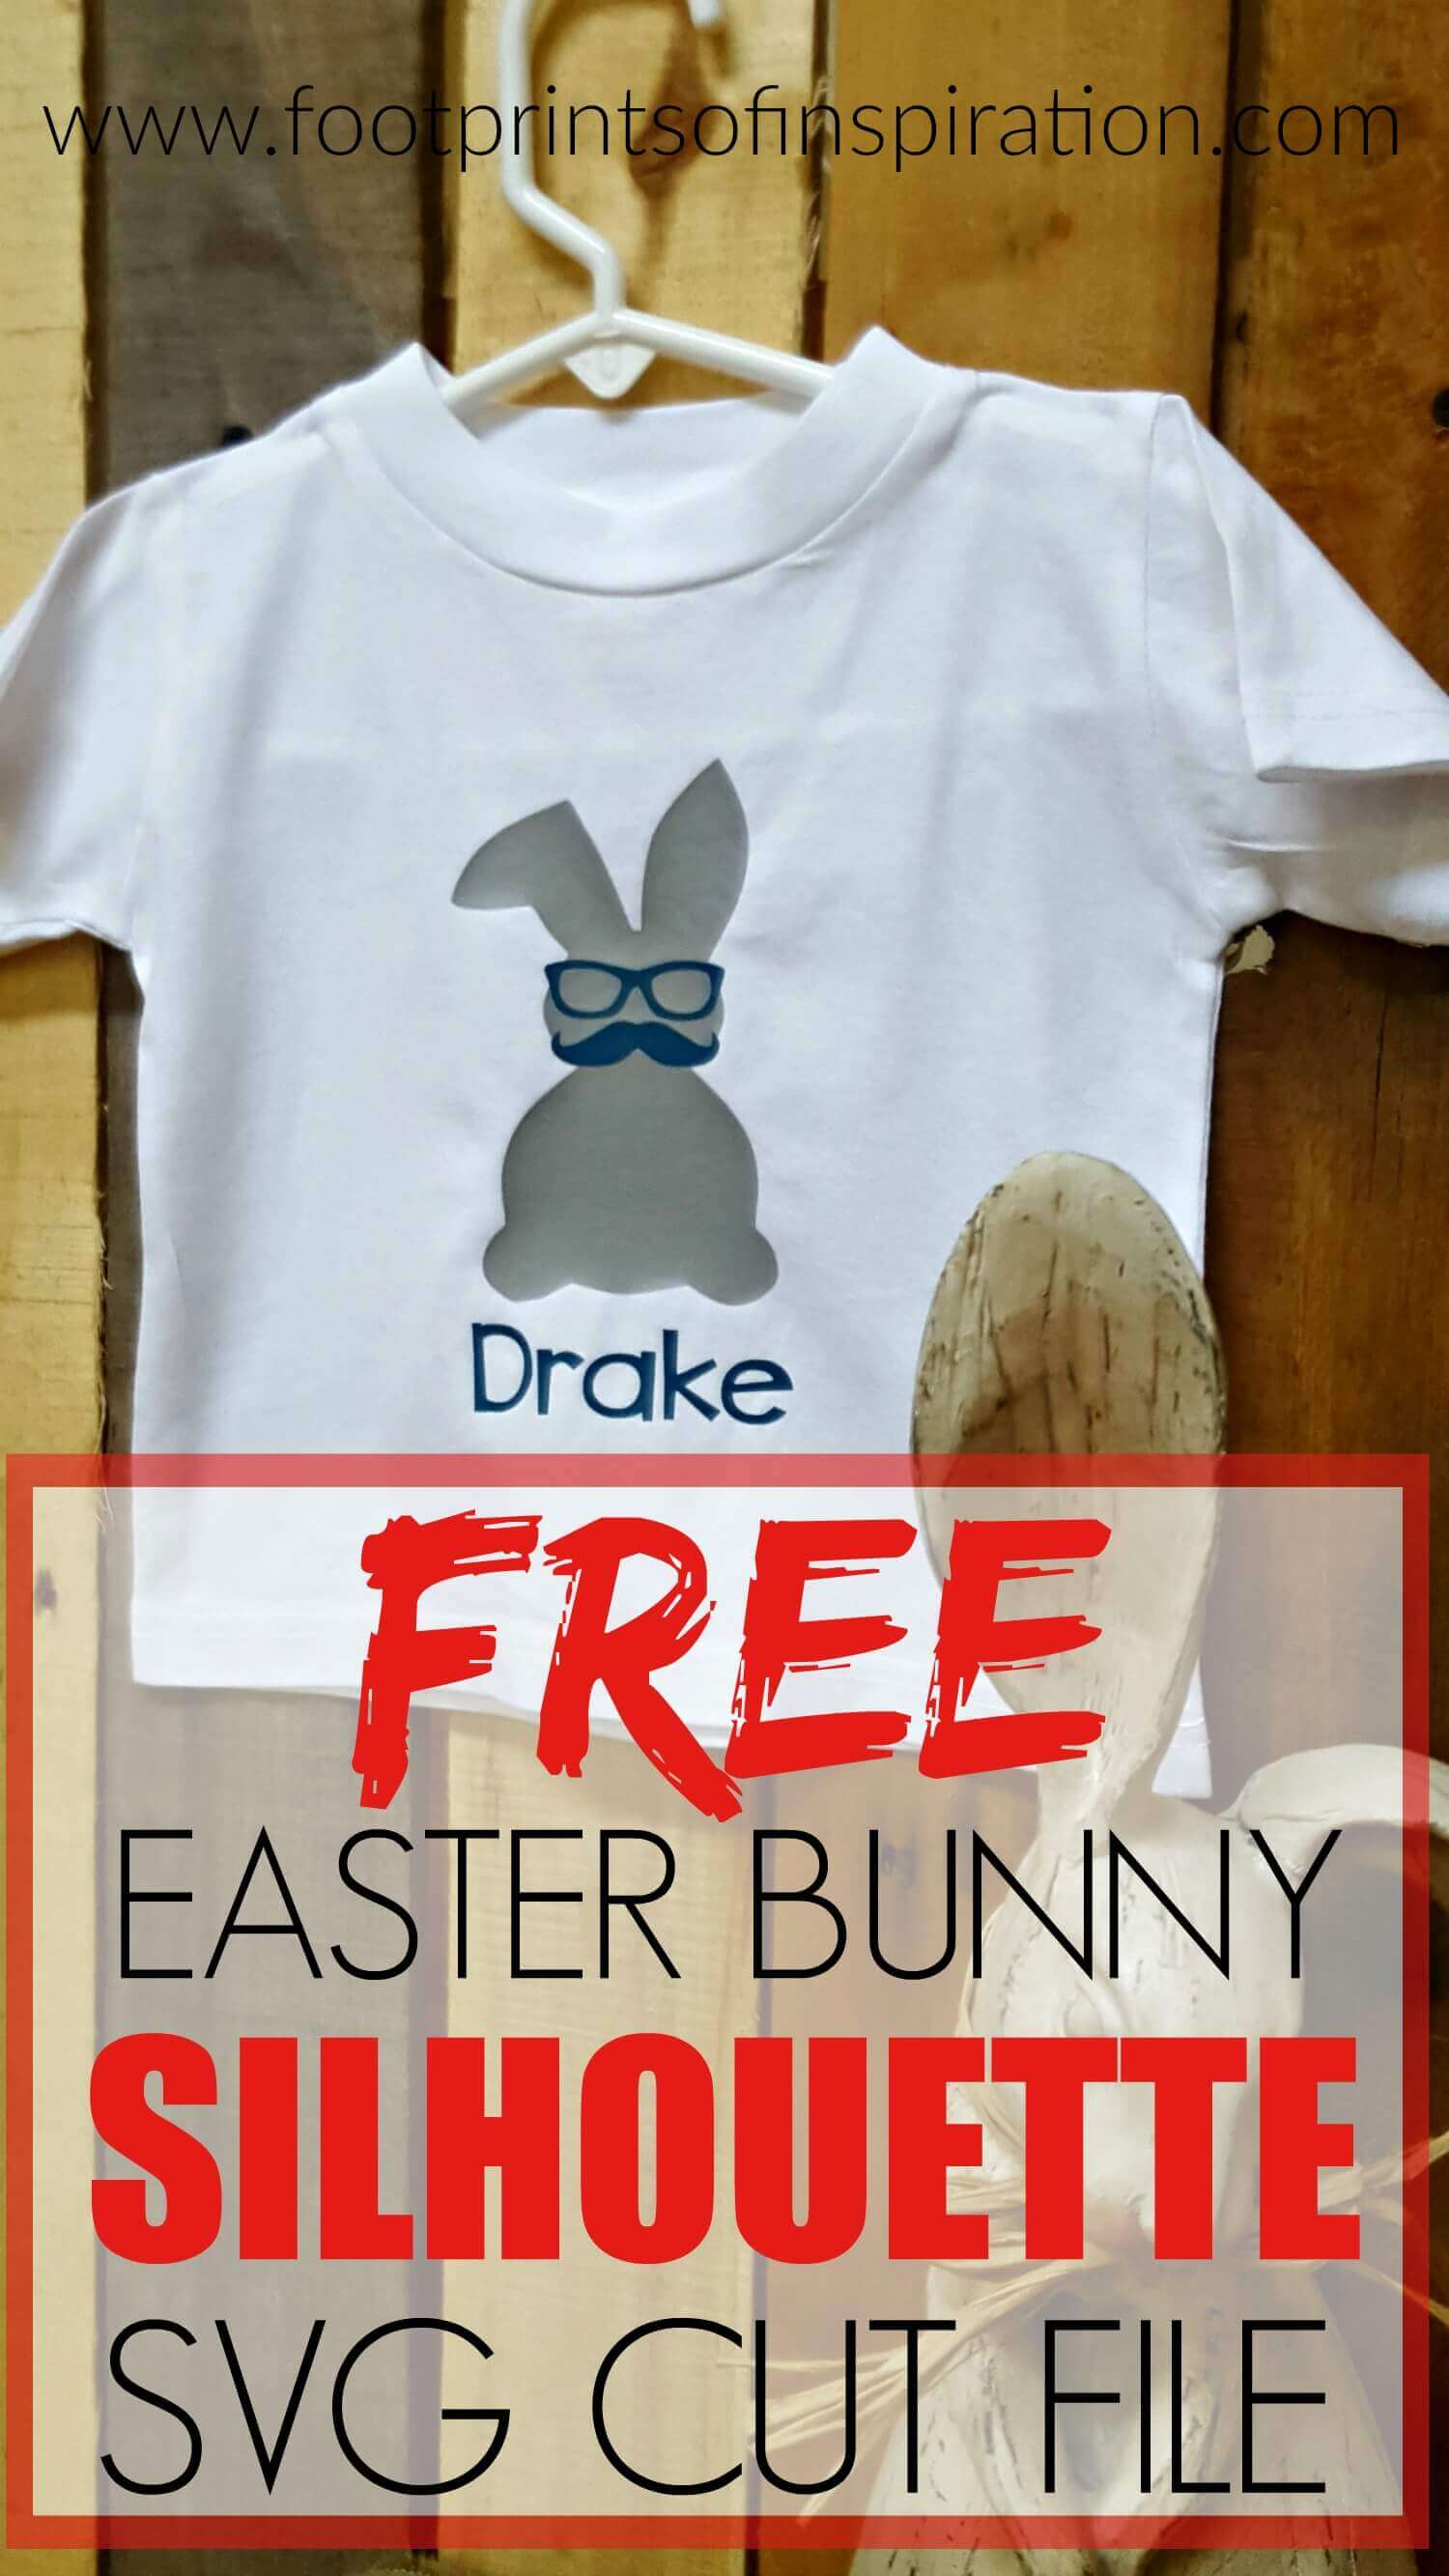 Free Easter Bunny Silhouette SVG Cut File